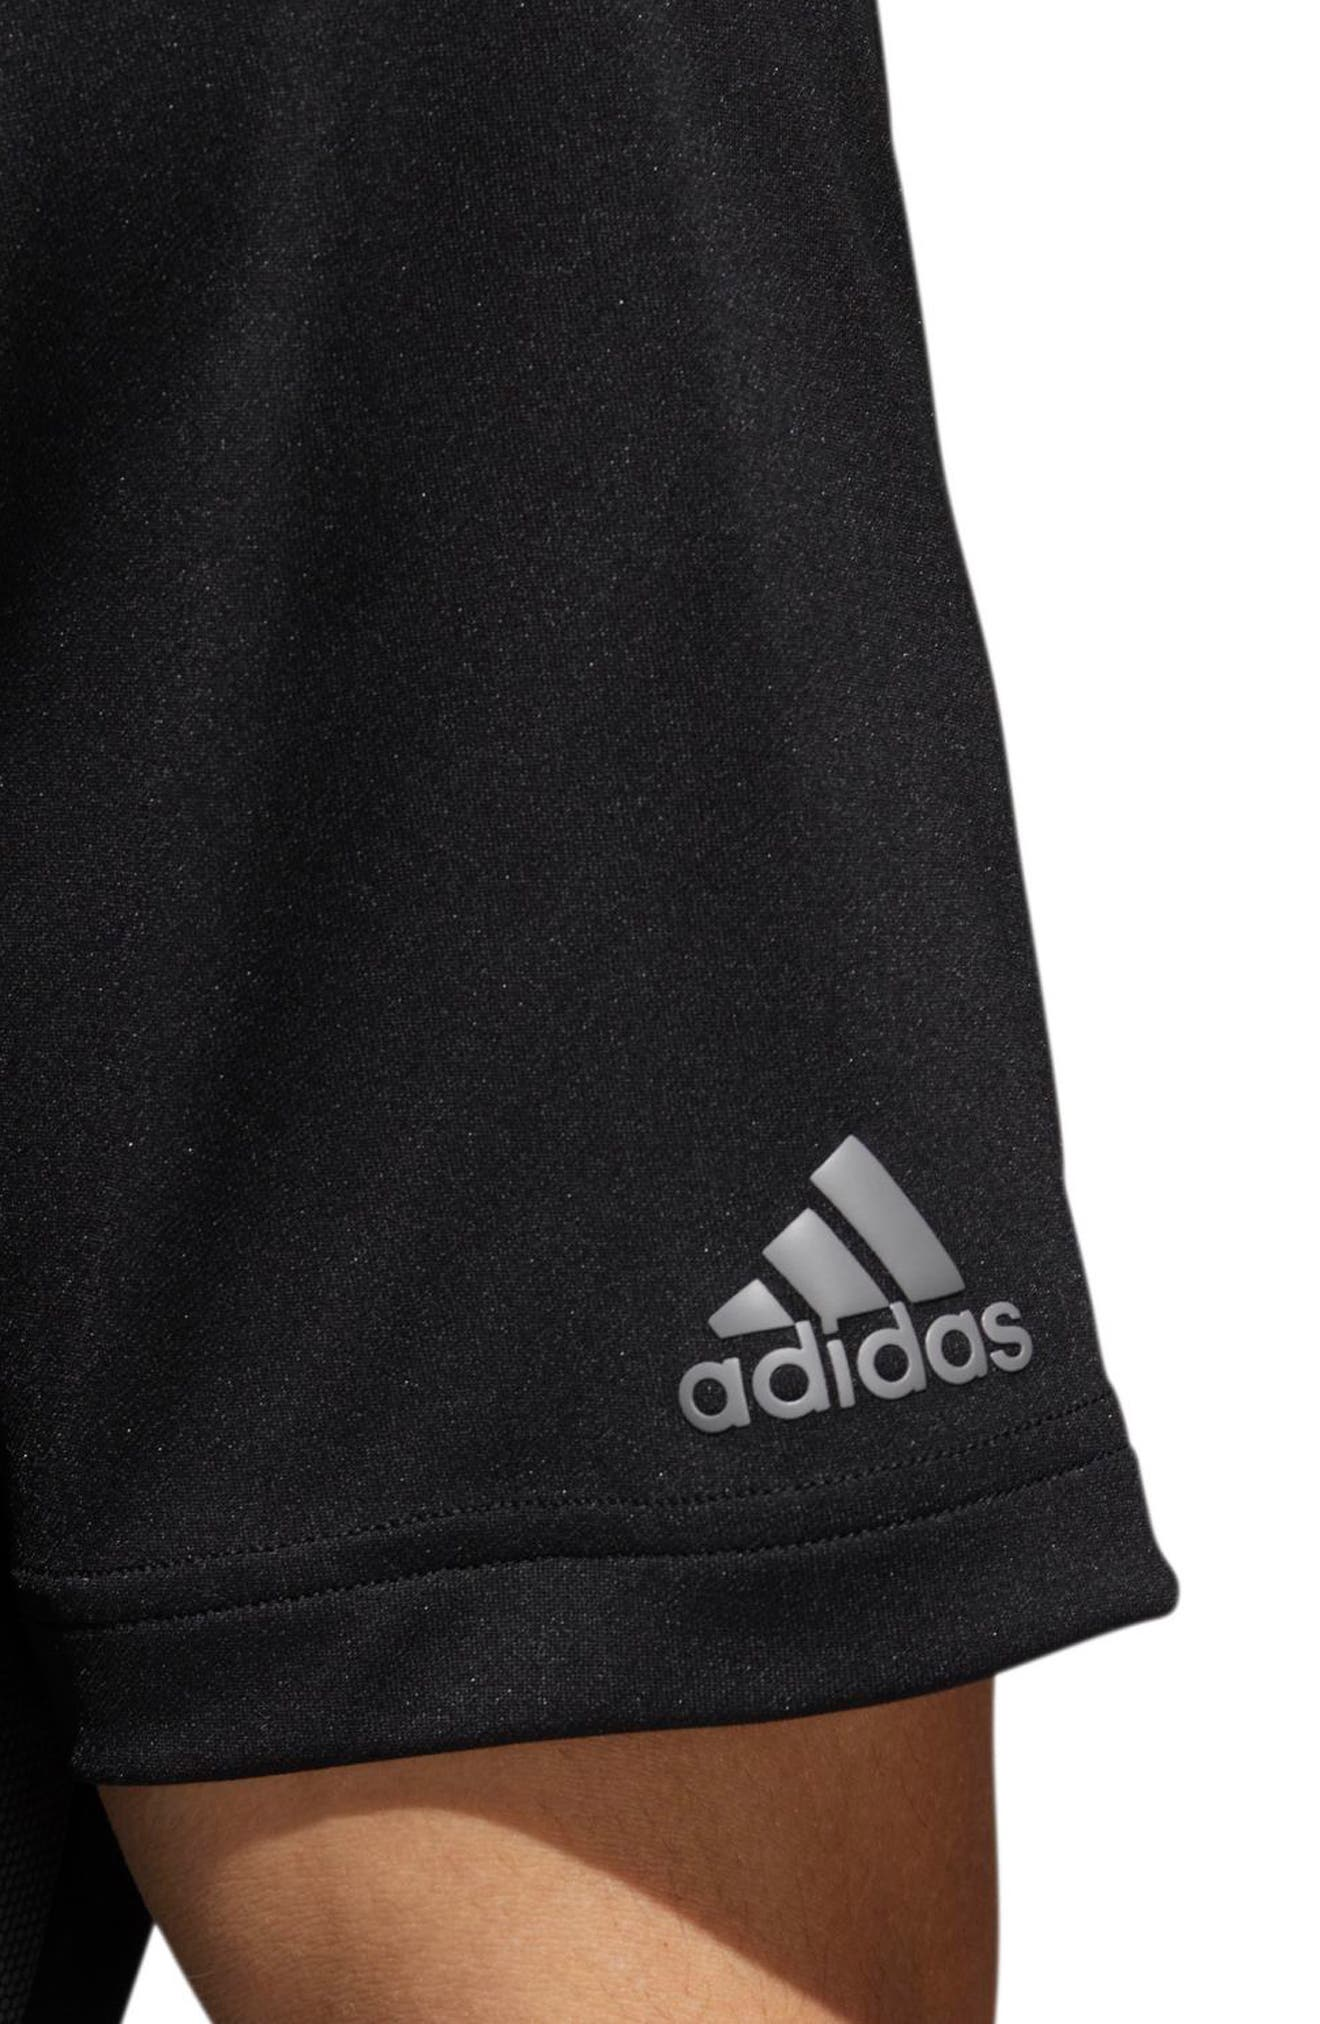 adidas 3-Stripes Regular Fit Golf Polo,                             Alternate thumbnail 5, color,                             BLACK/ GREY